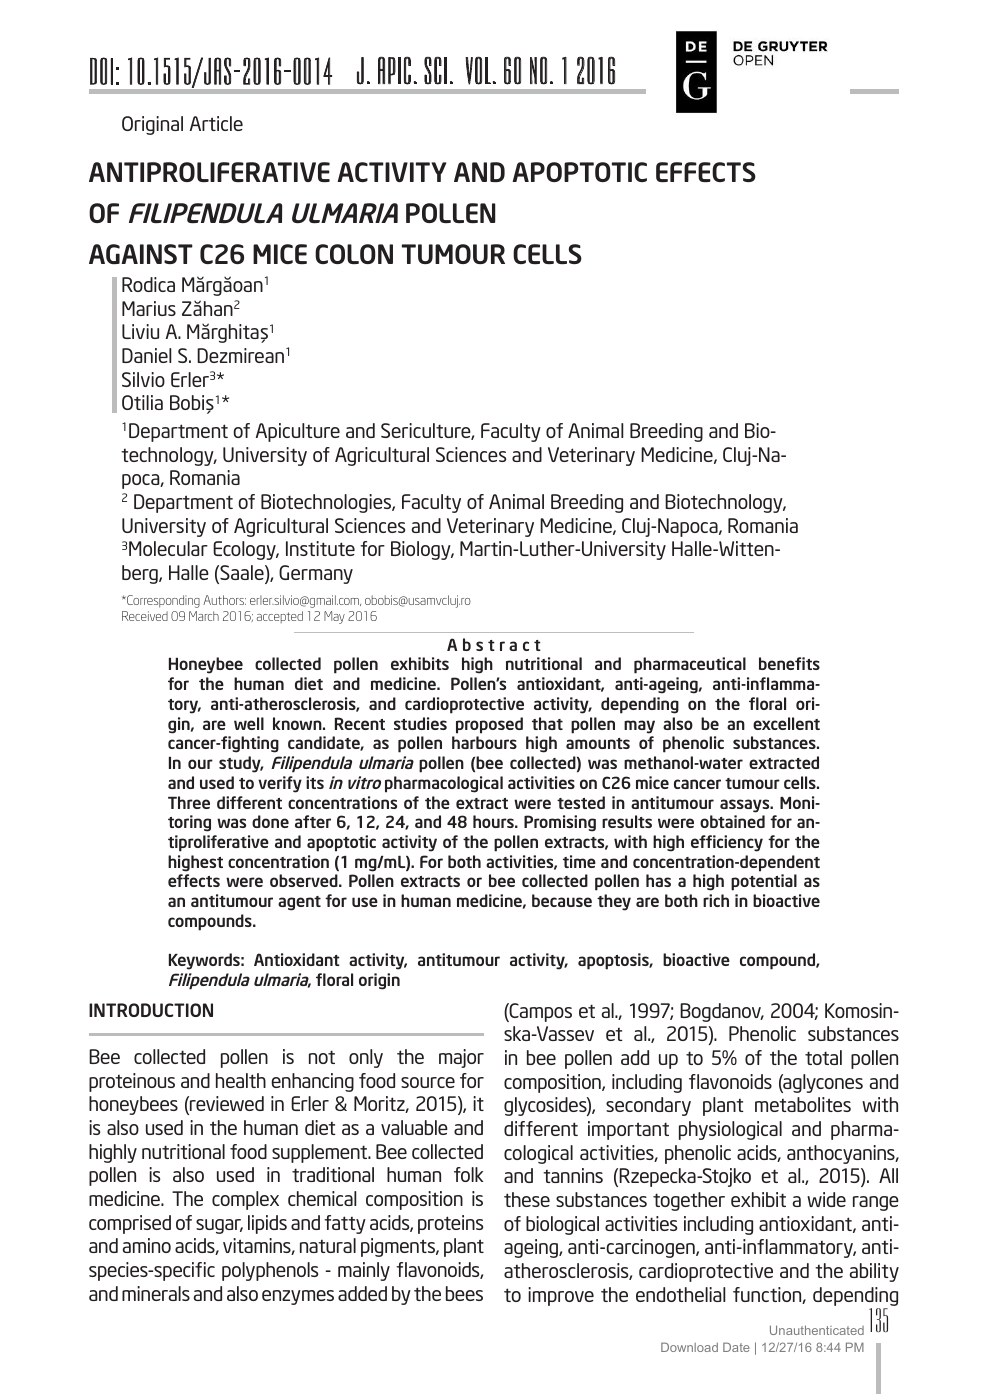 Antiproliferative activity and apoptotic effects of